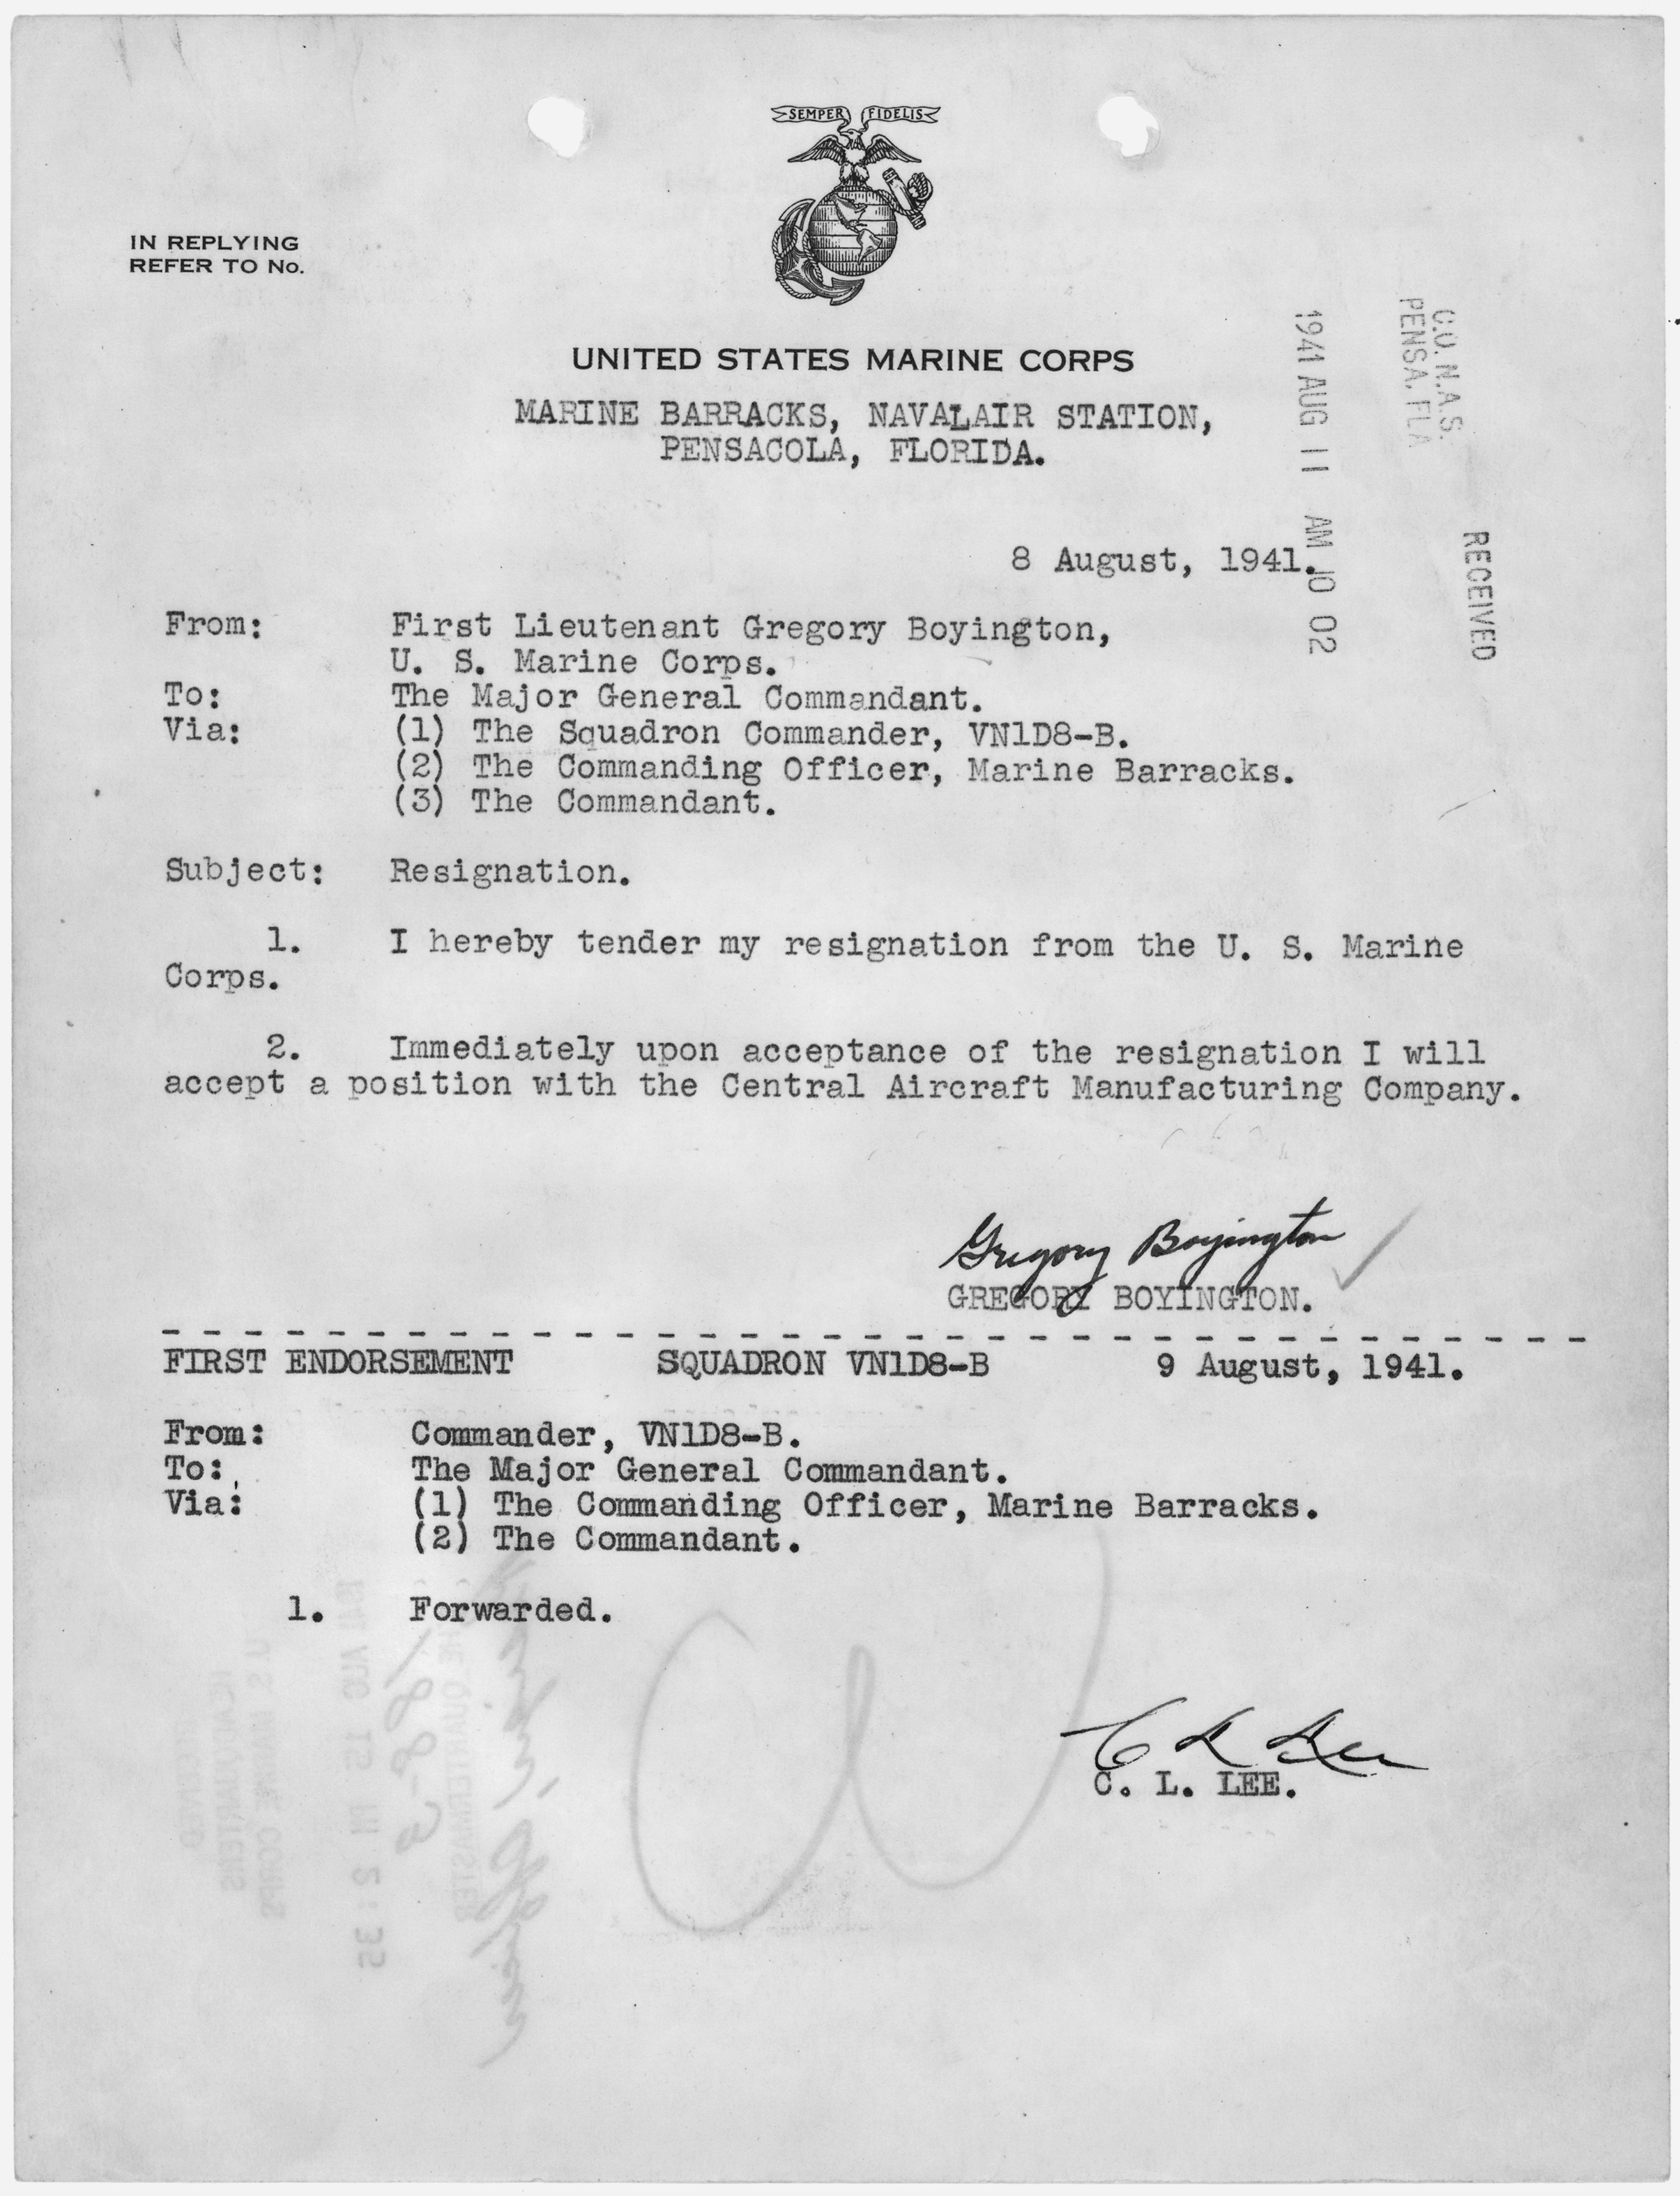 FileLetter of resignation from the US Marine Corps to accept a – Resignation Letter from a Position